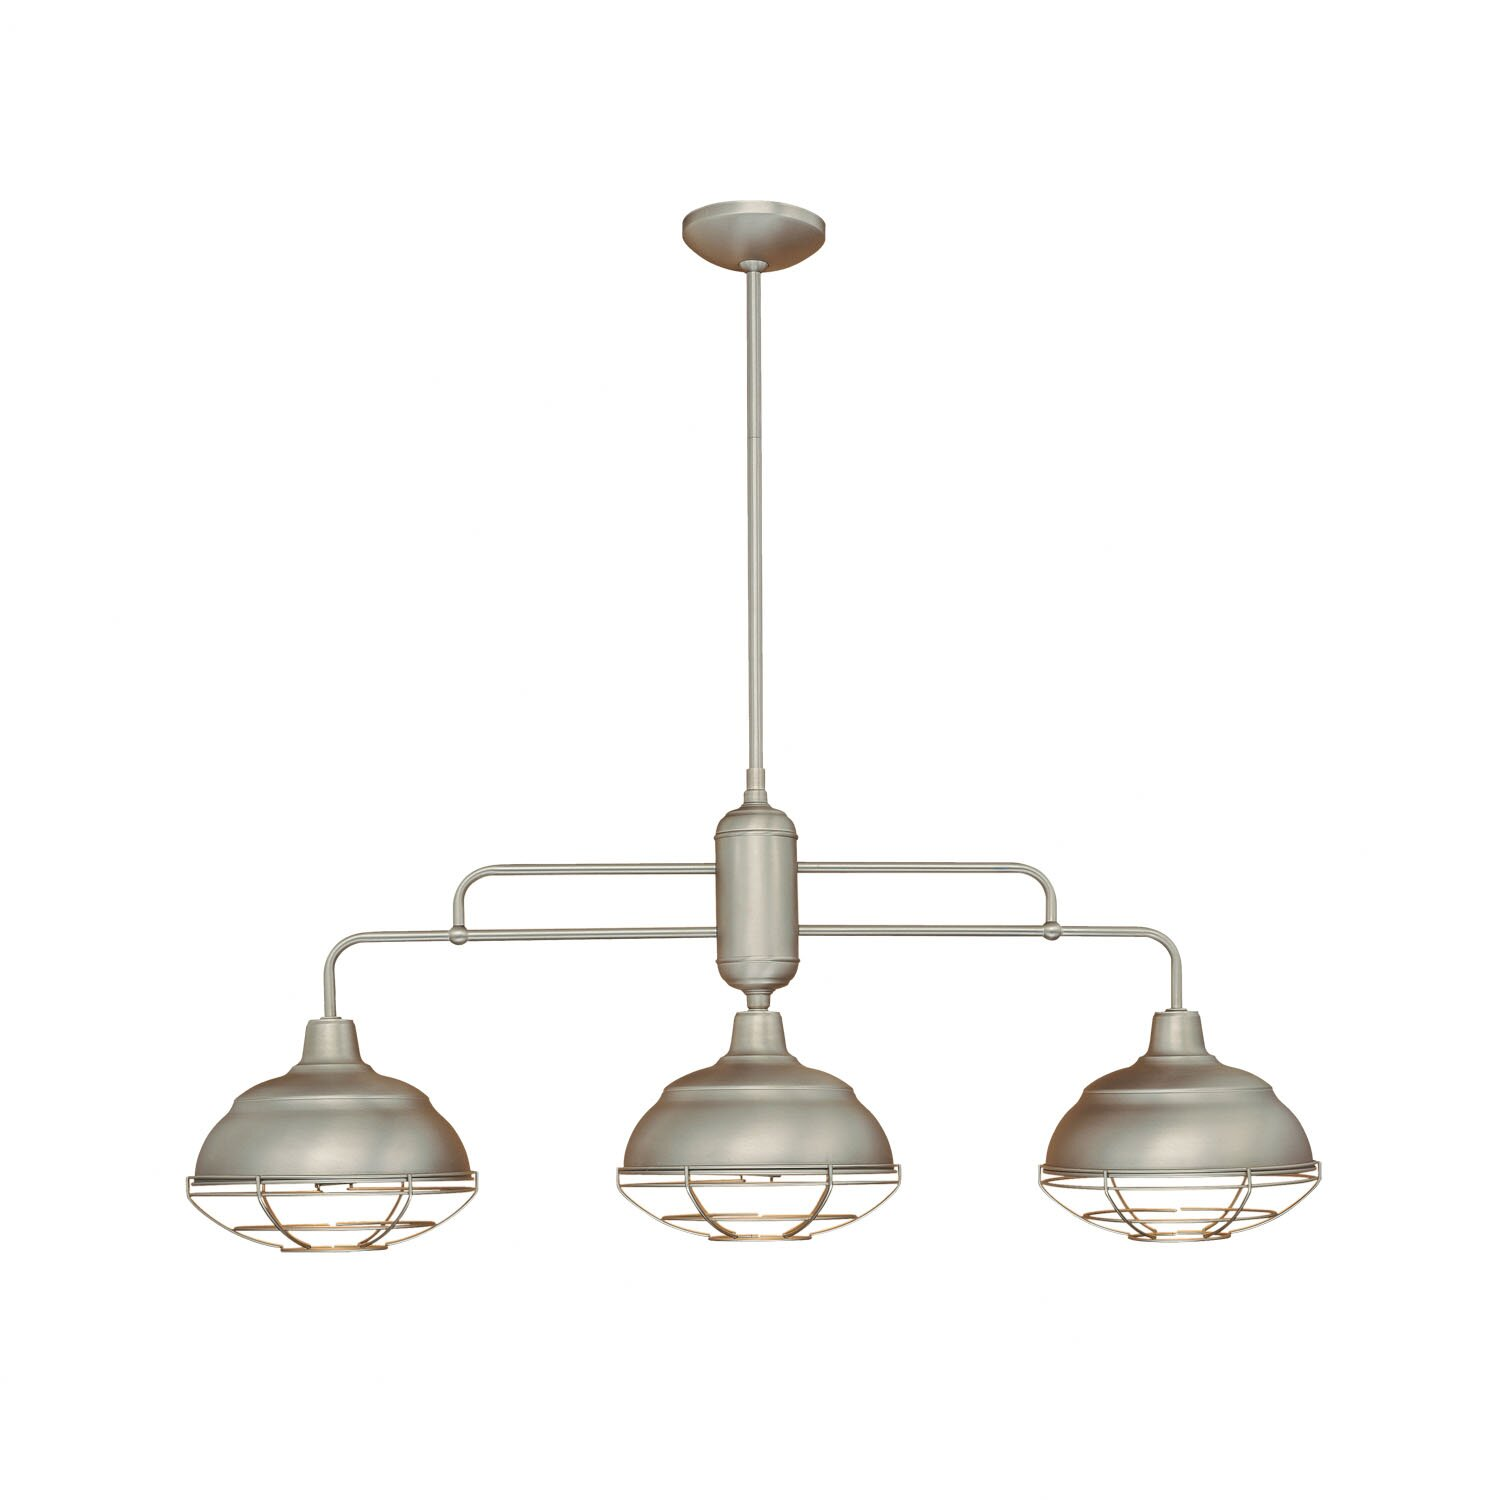 Millennium Lighting Neo Industrial 3 Light Kitchen Island Pendant Revie